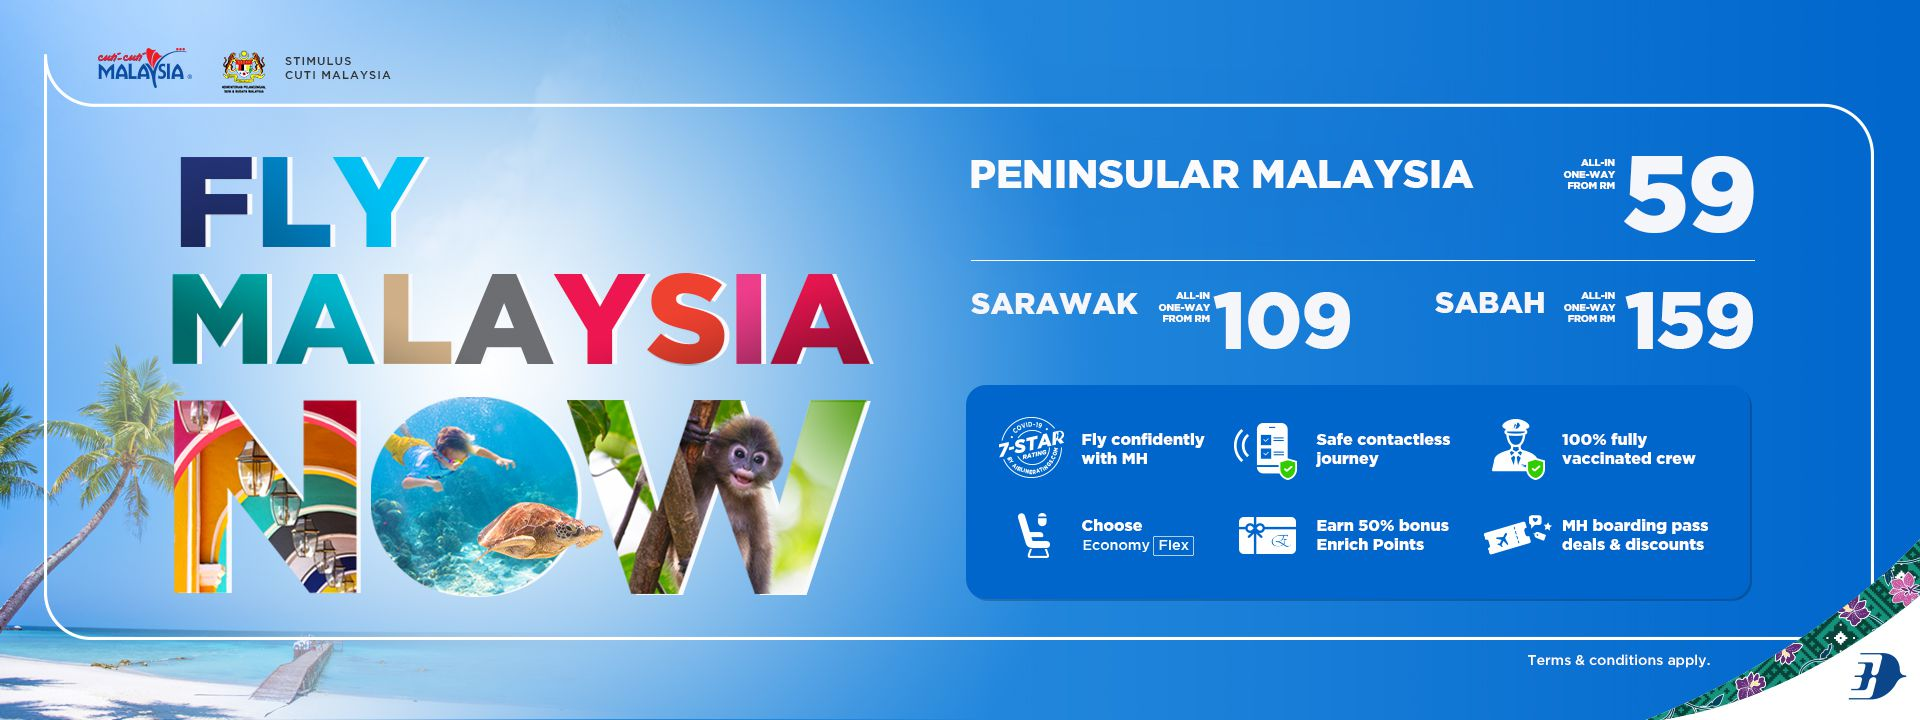 Malaysia Airlines It's time to fly Malaysia! mh fly malaysia now